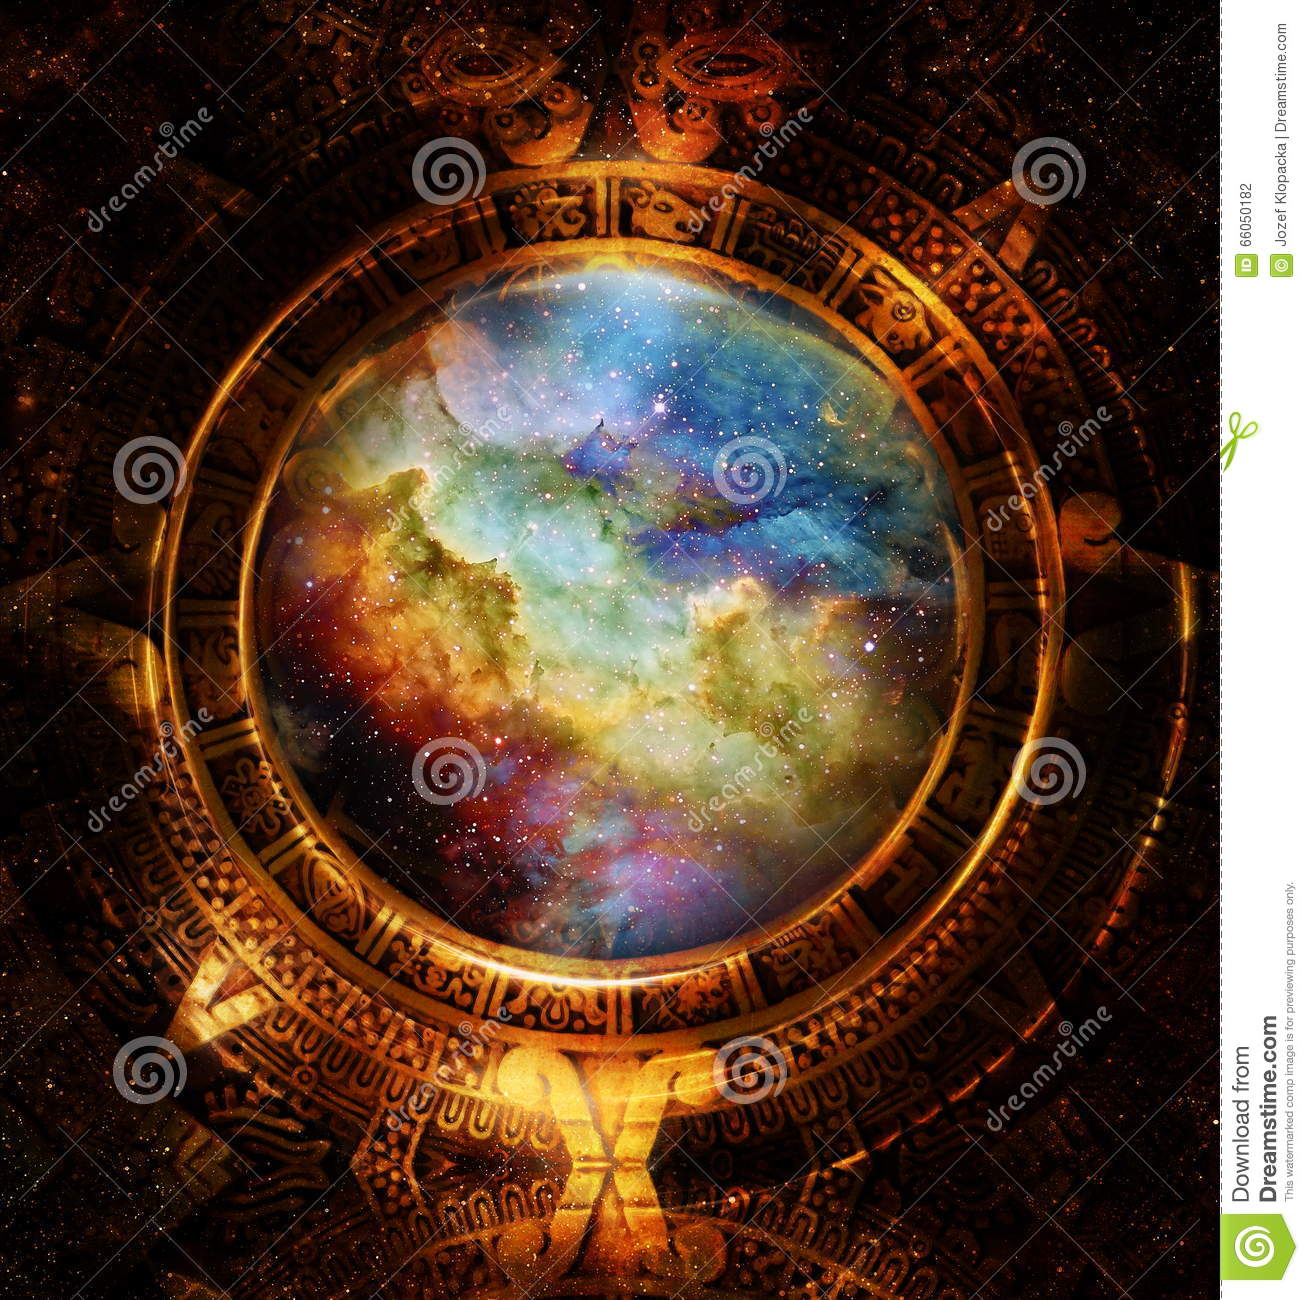 Ancient mayan calendar cosmic space and stars abstract for Significado de exterior